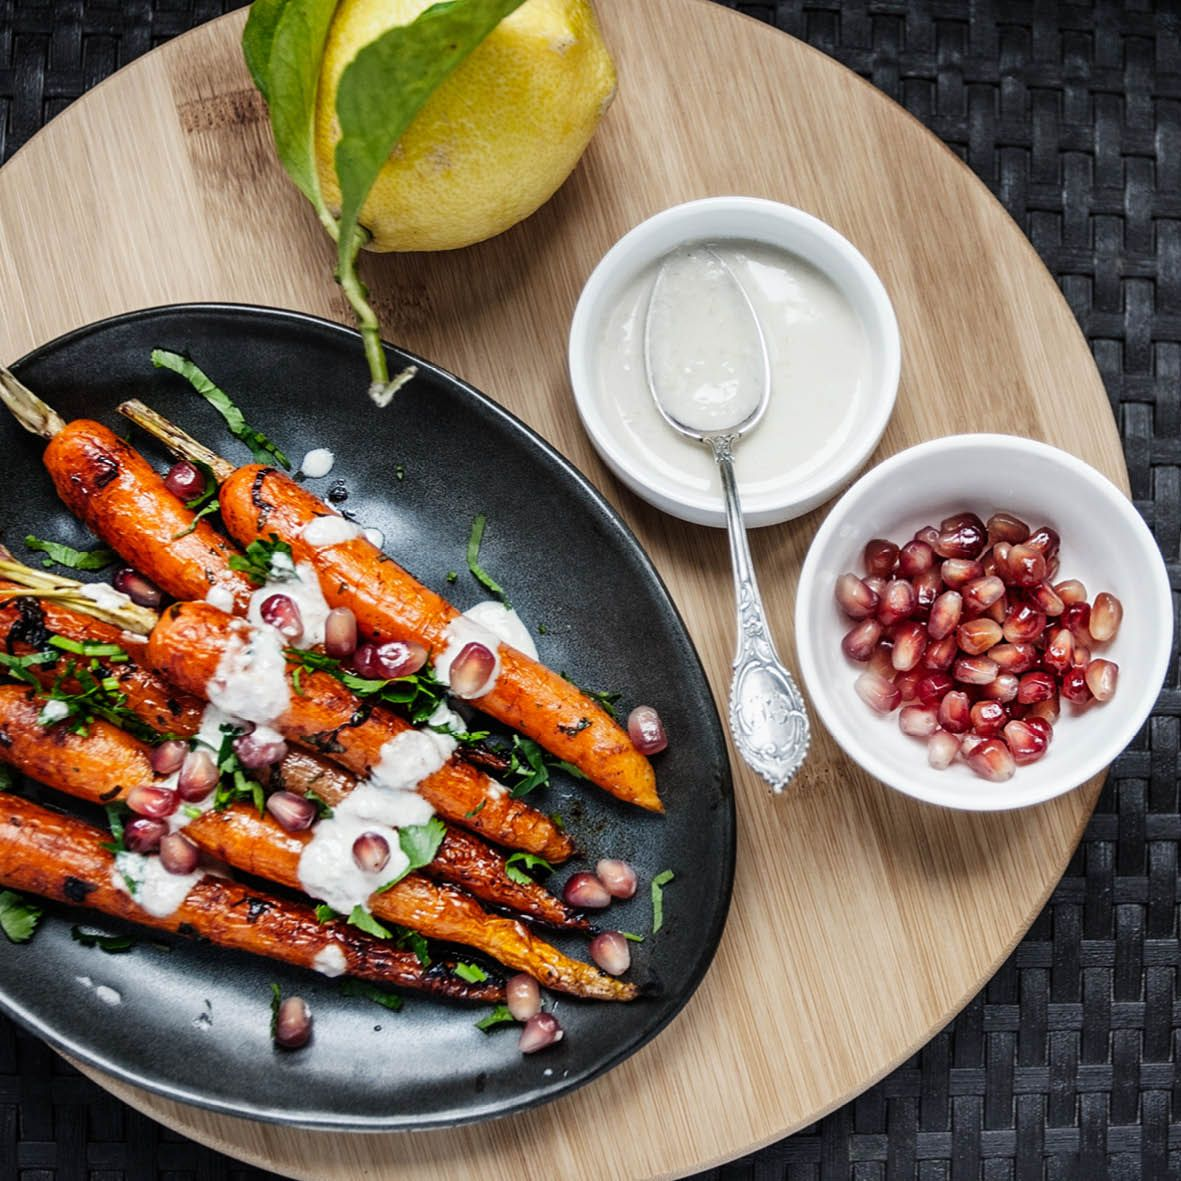 Honey-roasted_carrots_with_tahini_drizzle.jpg